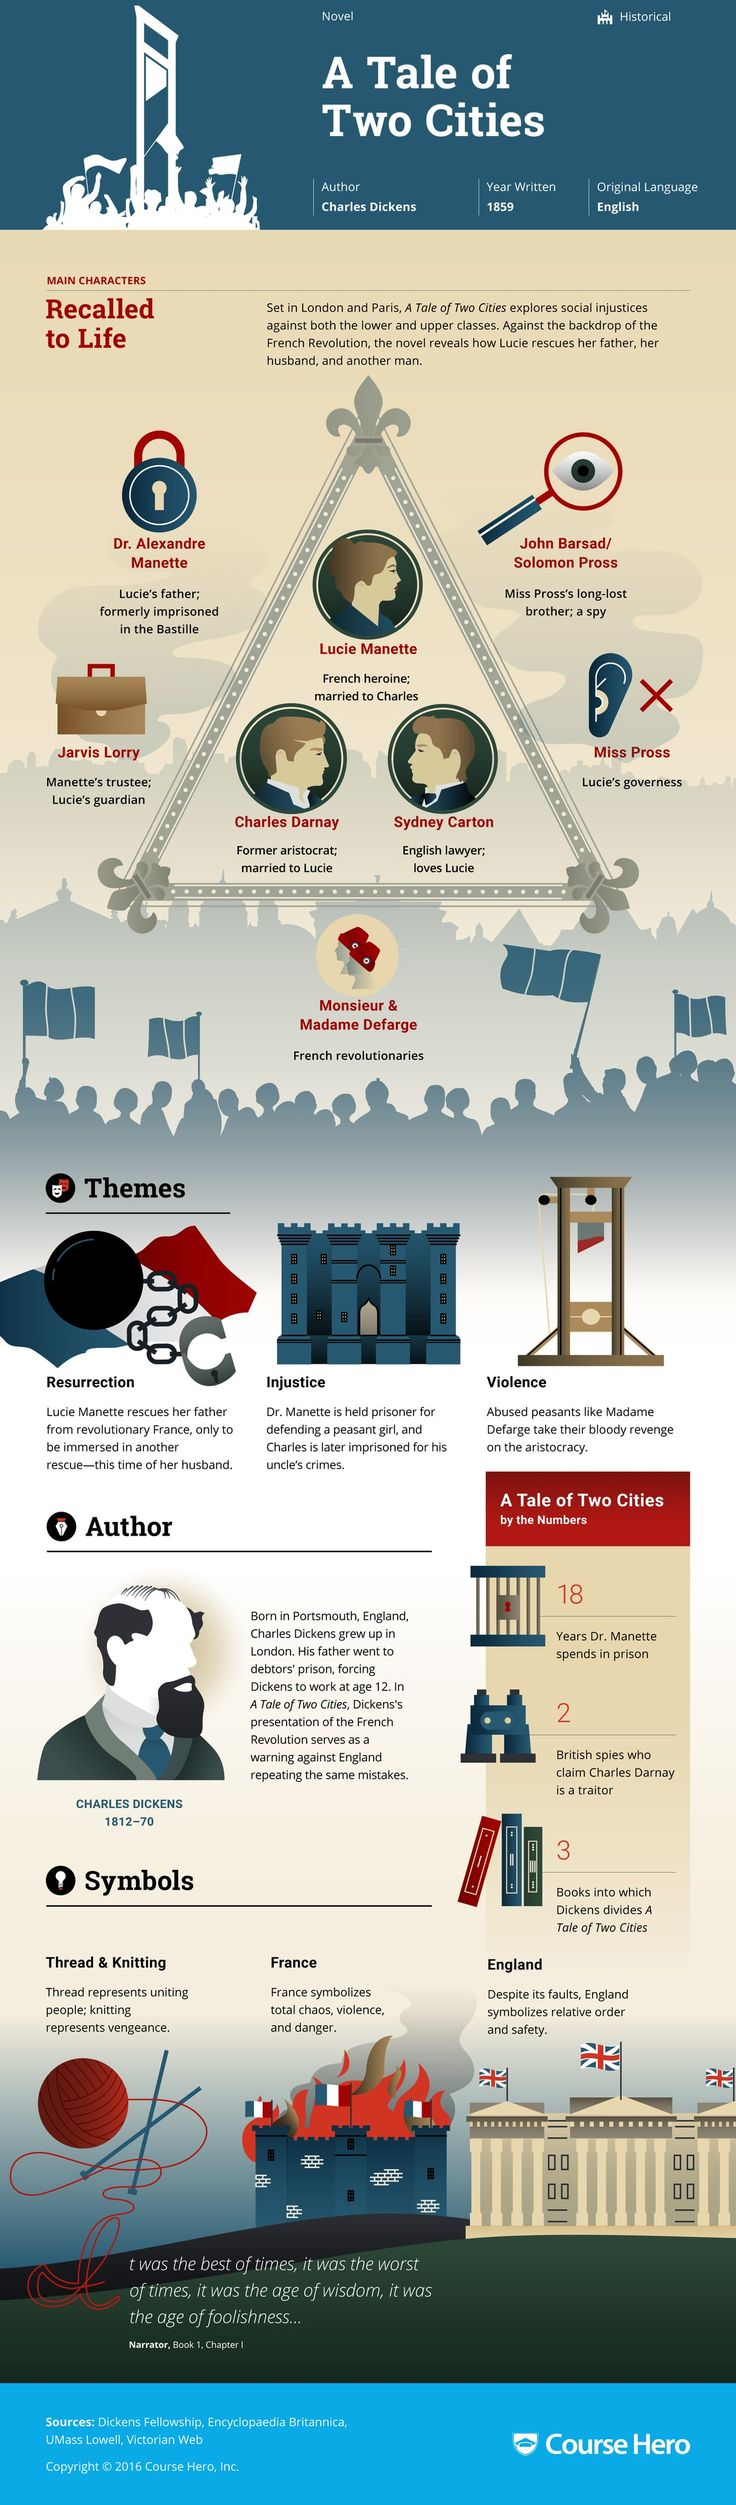 A Tale of Two Cities Infographic | Course Hero